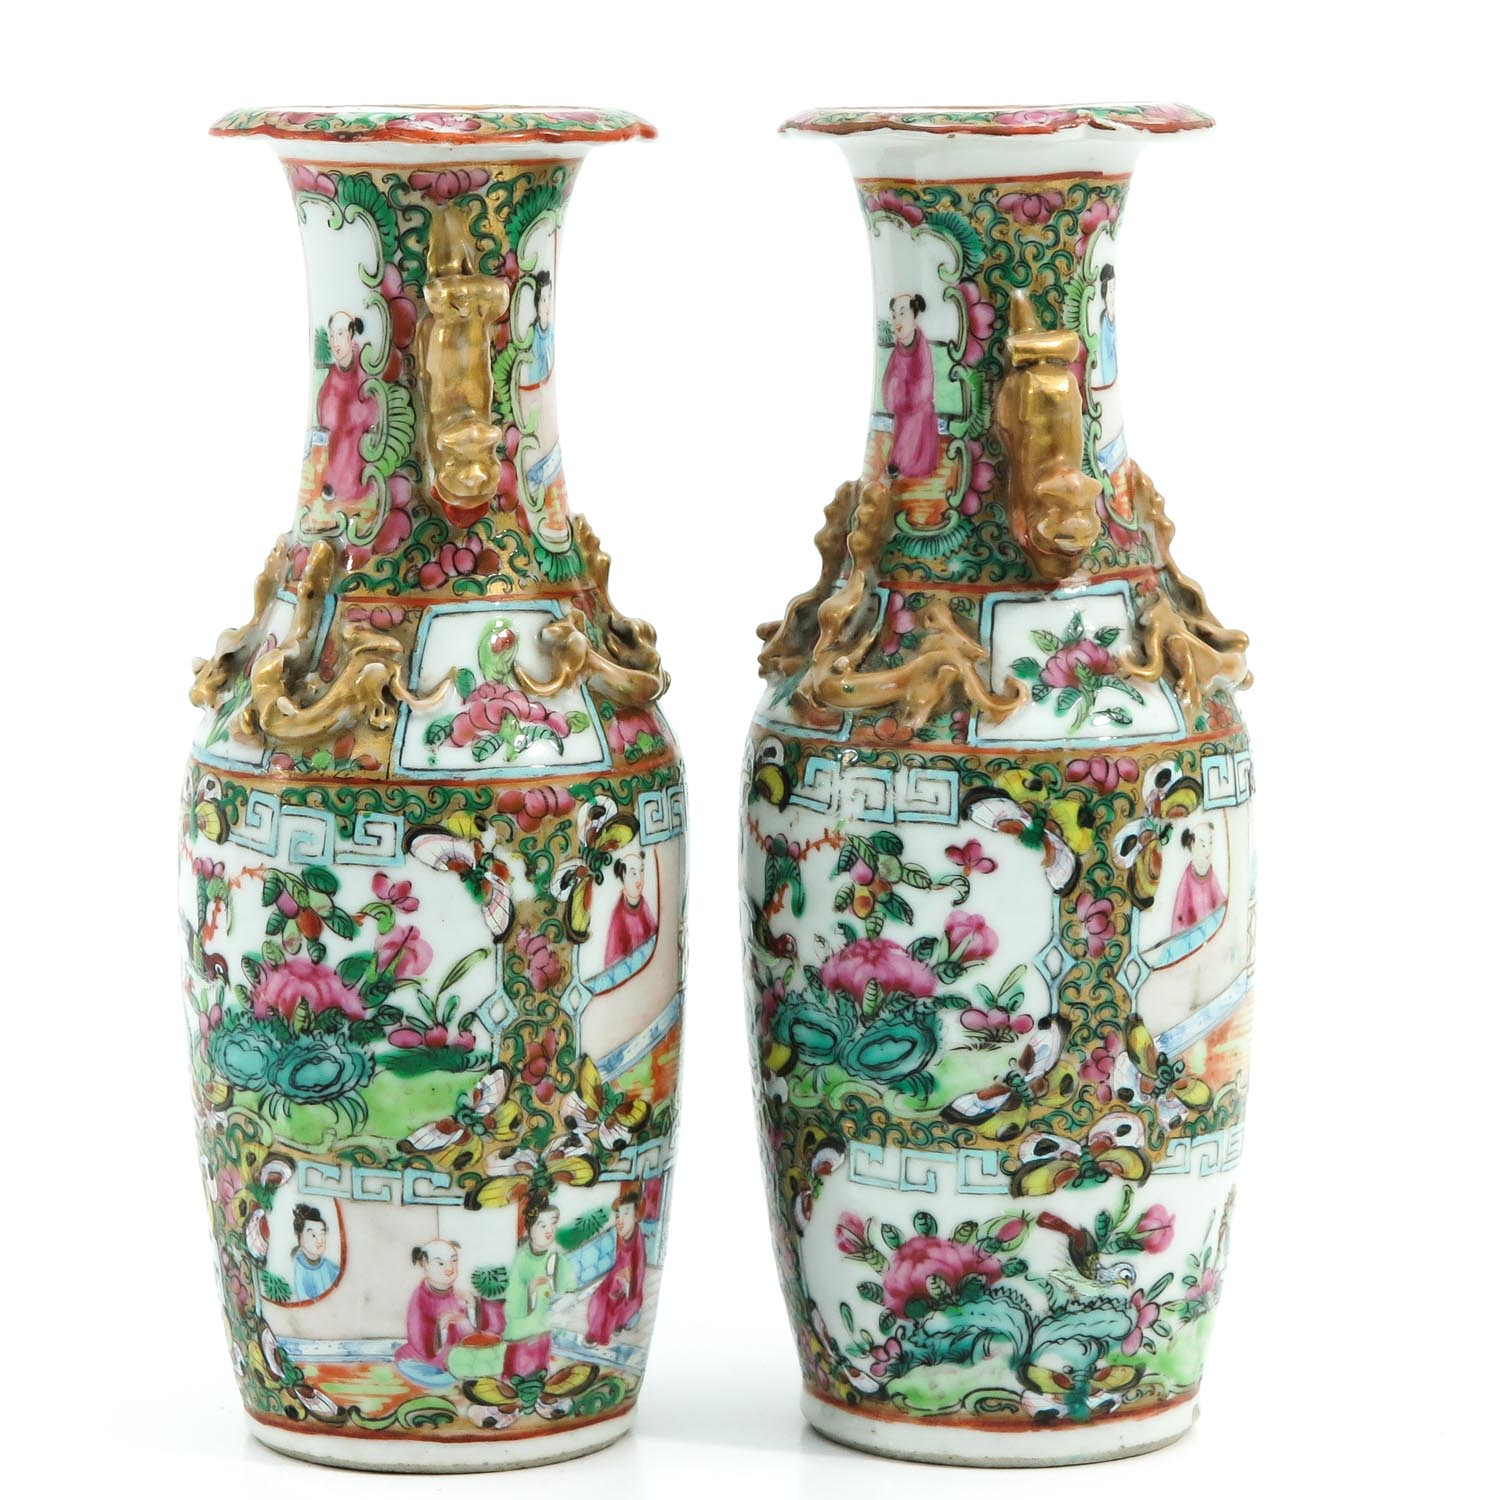 A Pair of Cantonese Vases - Image 4 of 9